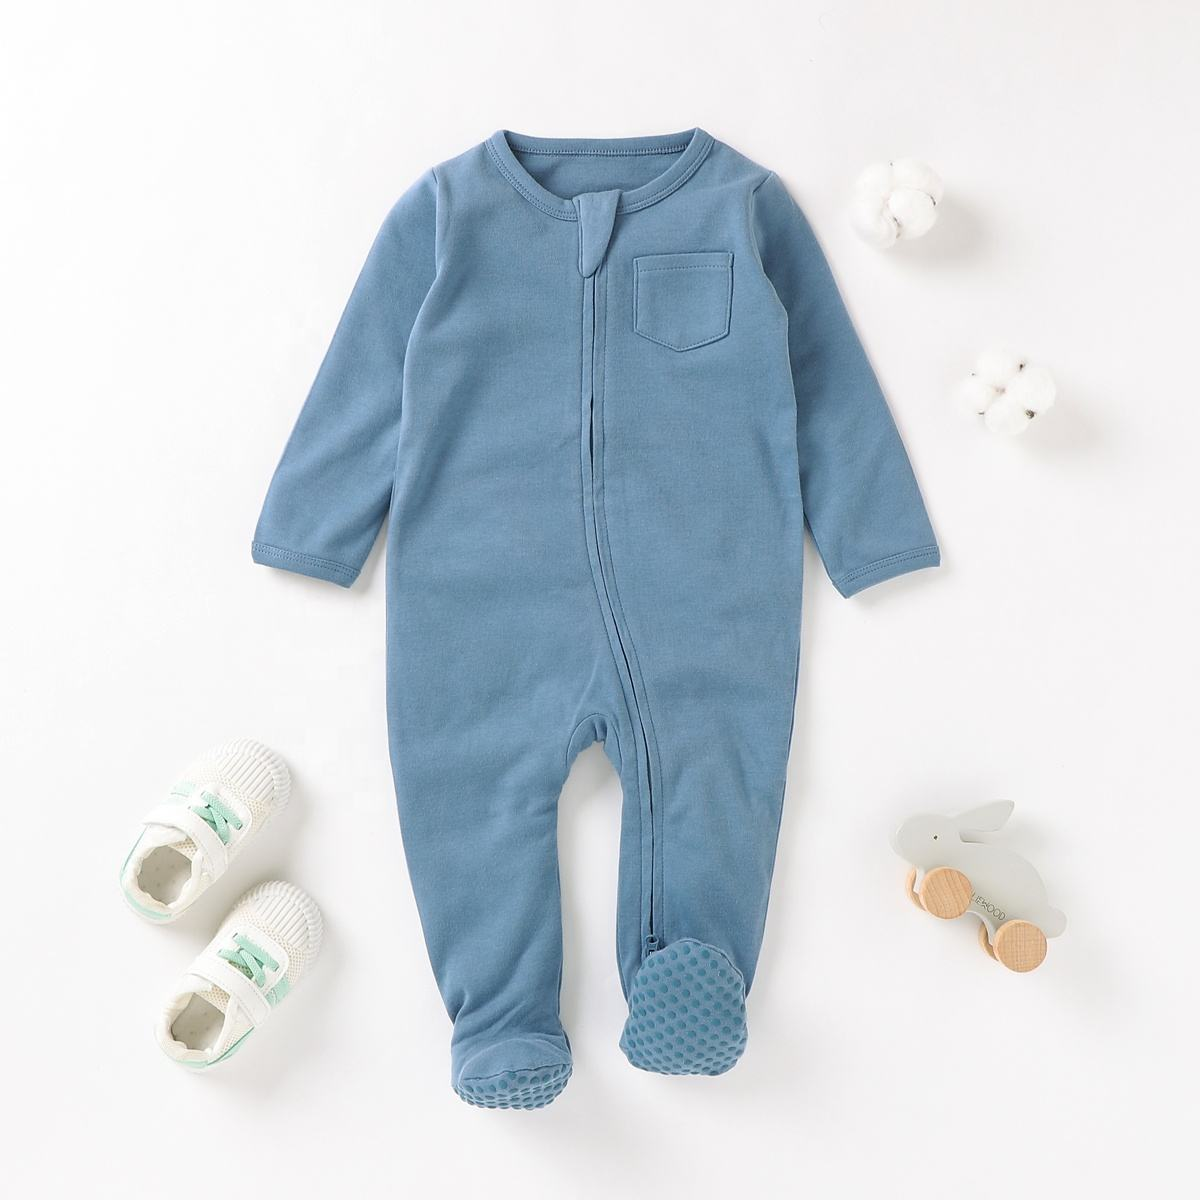 GOTS Certified 100% Organic Cotton Zipper Footie Baby Jumpsuit Romper